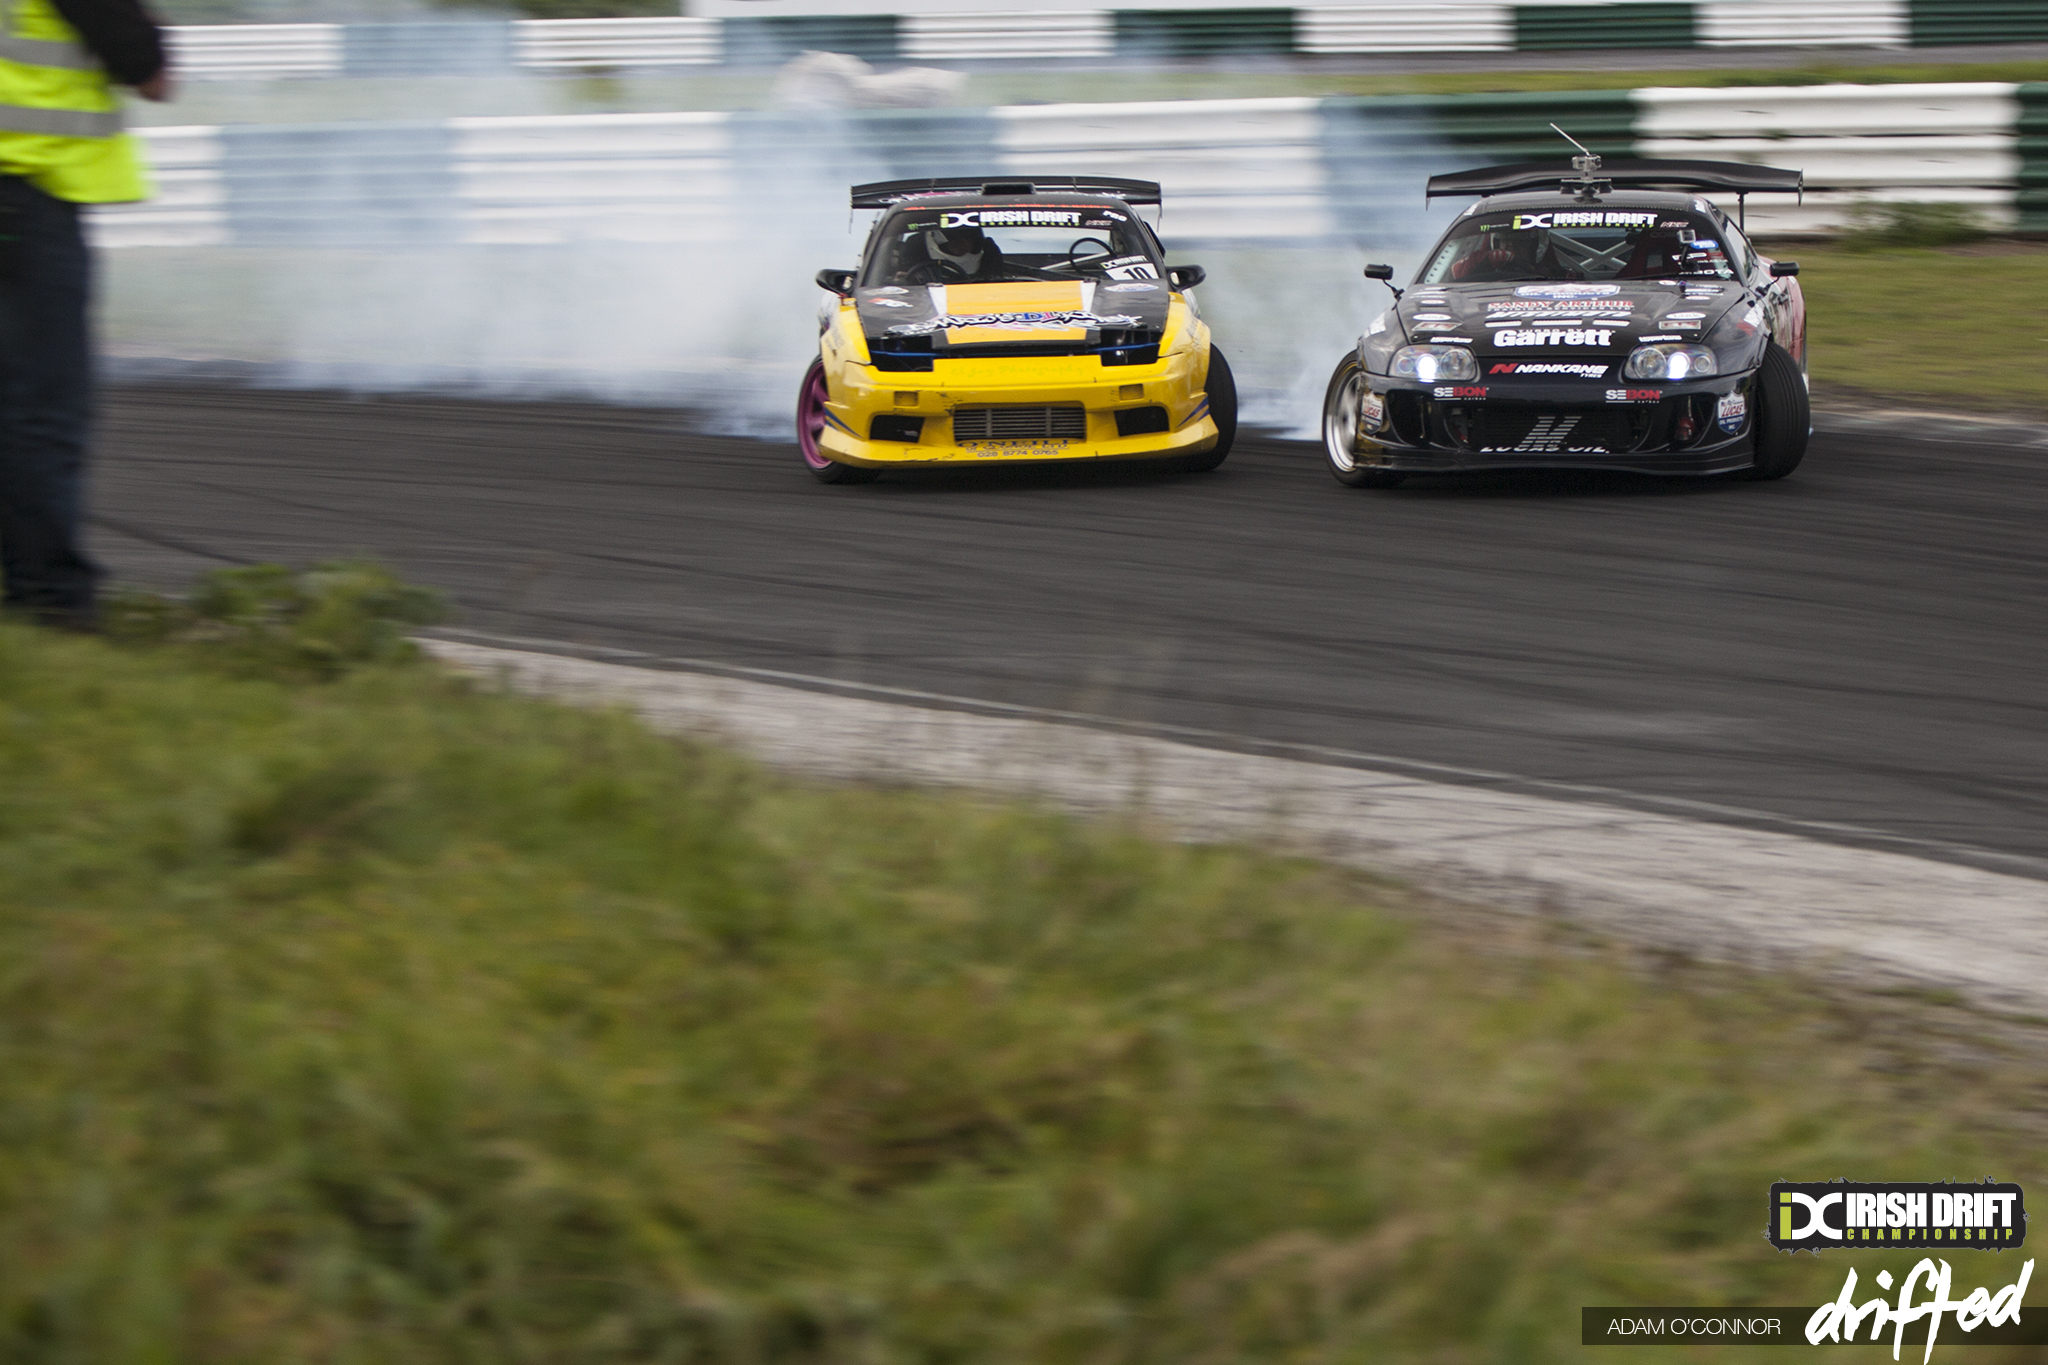 EVENT: Irish Drift Championship 2014: 10 Years On